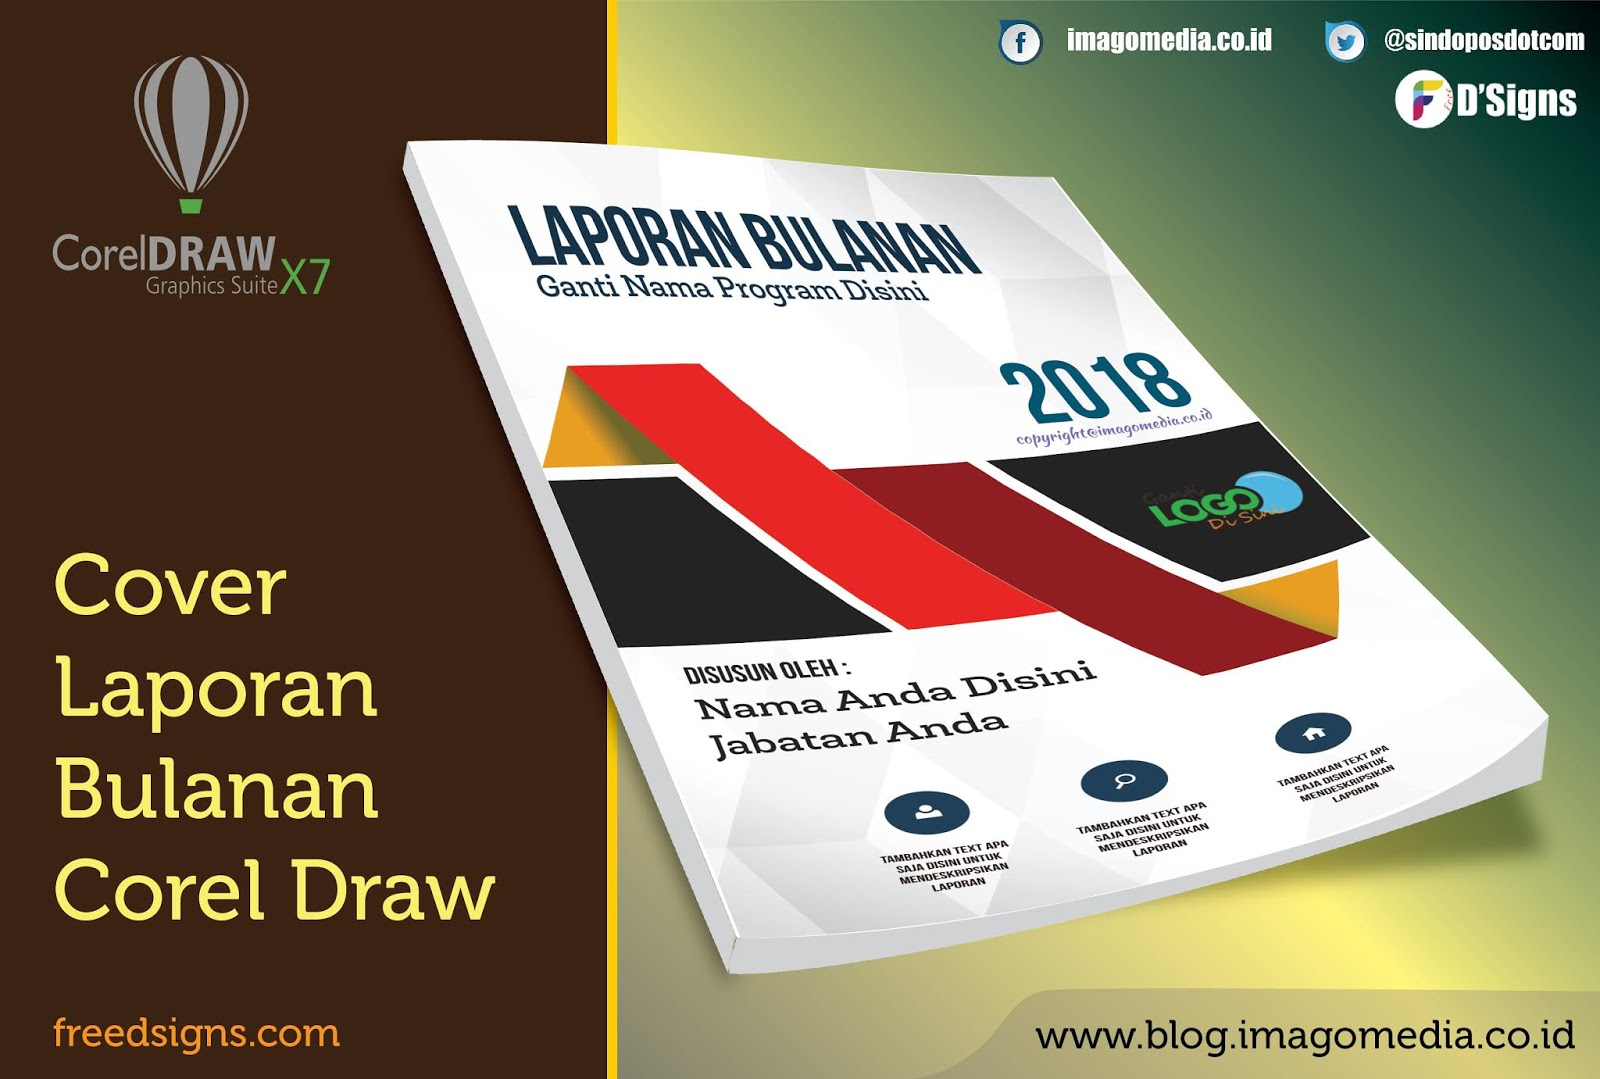 Download_Desain_Cover_Laporan_Bulanan_Gratis_Corel_Draw-01